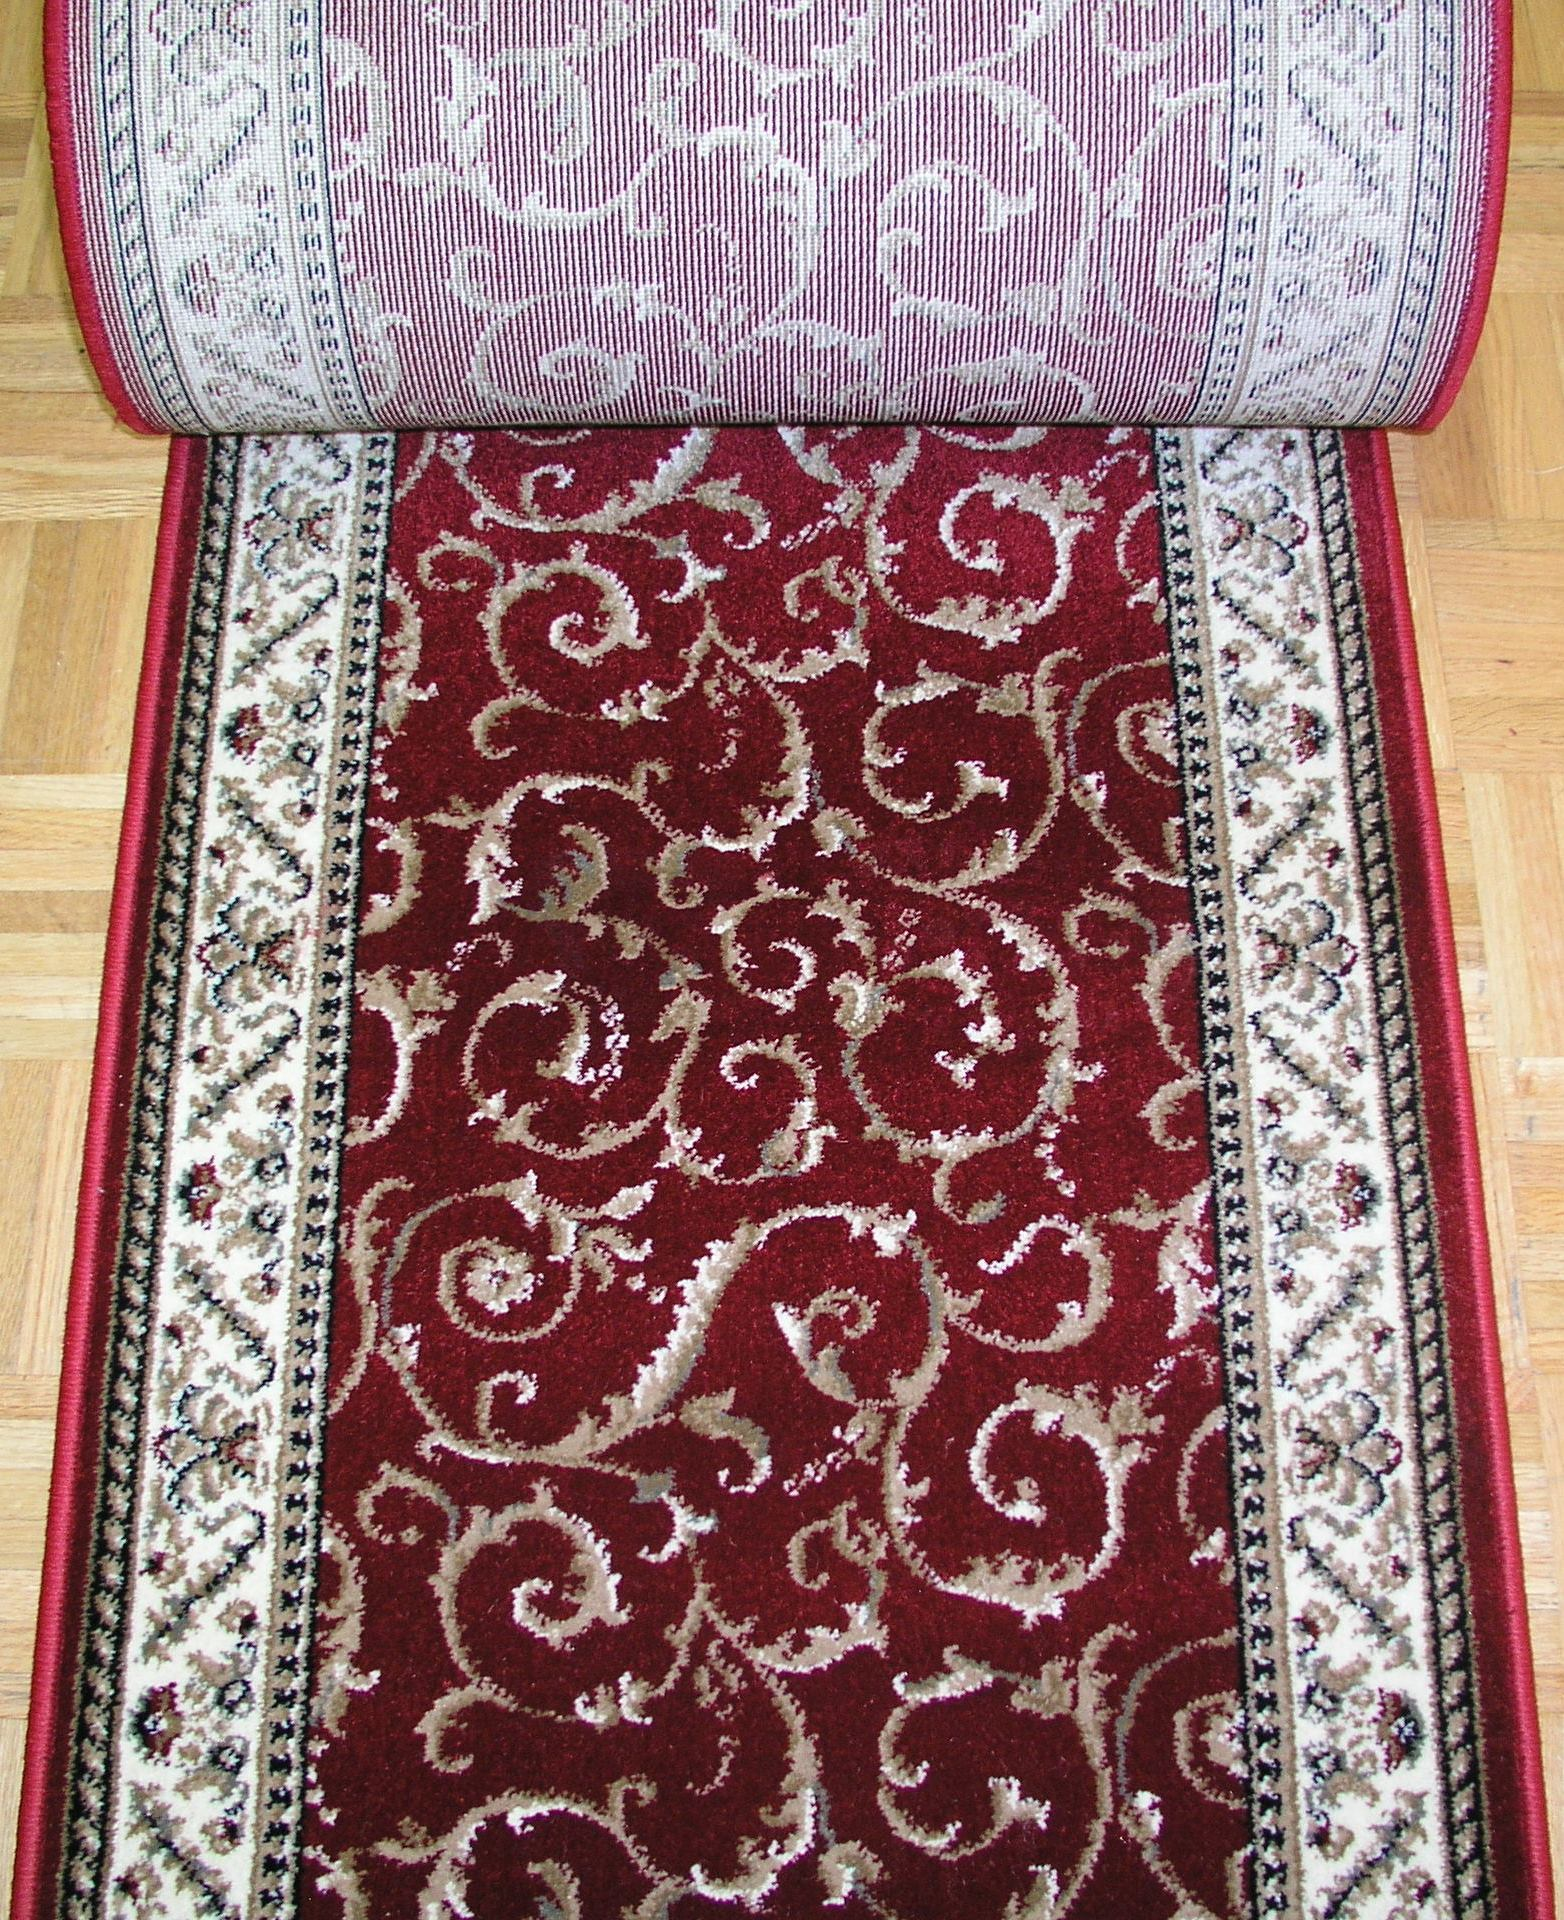 Como 1599 Red Stair Runners Scroll - 26 inch Sold By the Foot